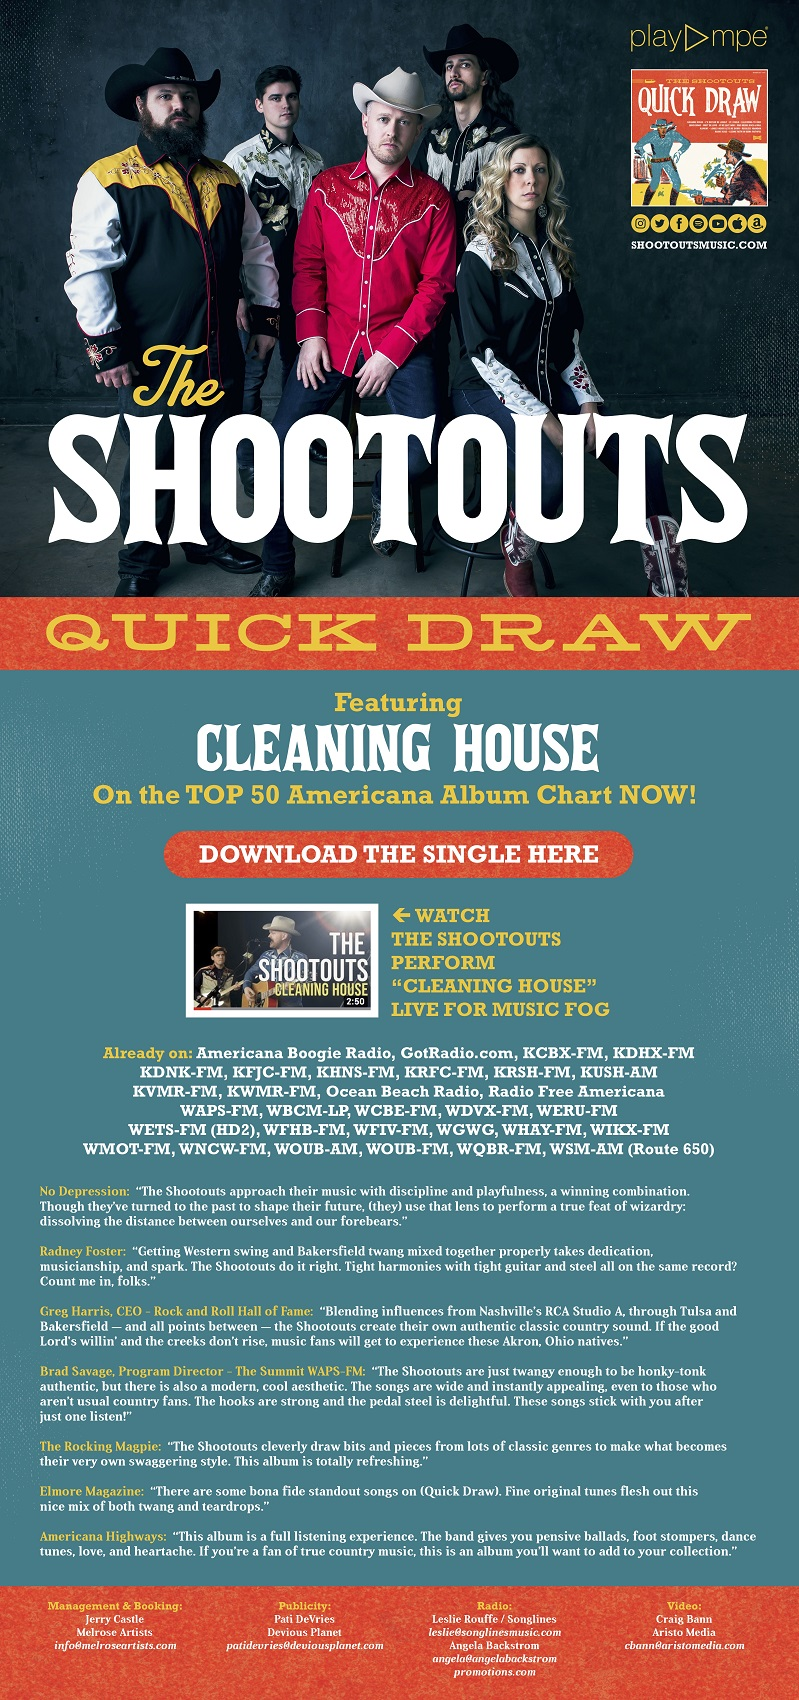 The Shootouts - Cleaning House - Daily Play MPE®Daily Play MPE®